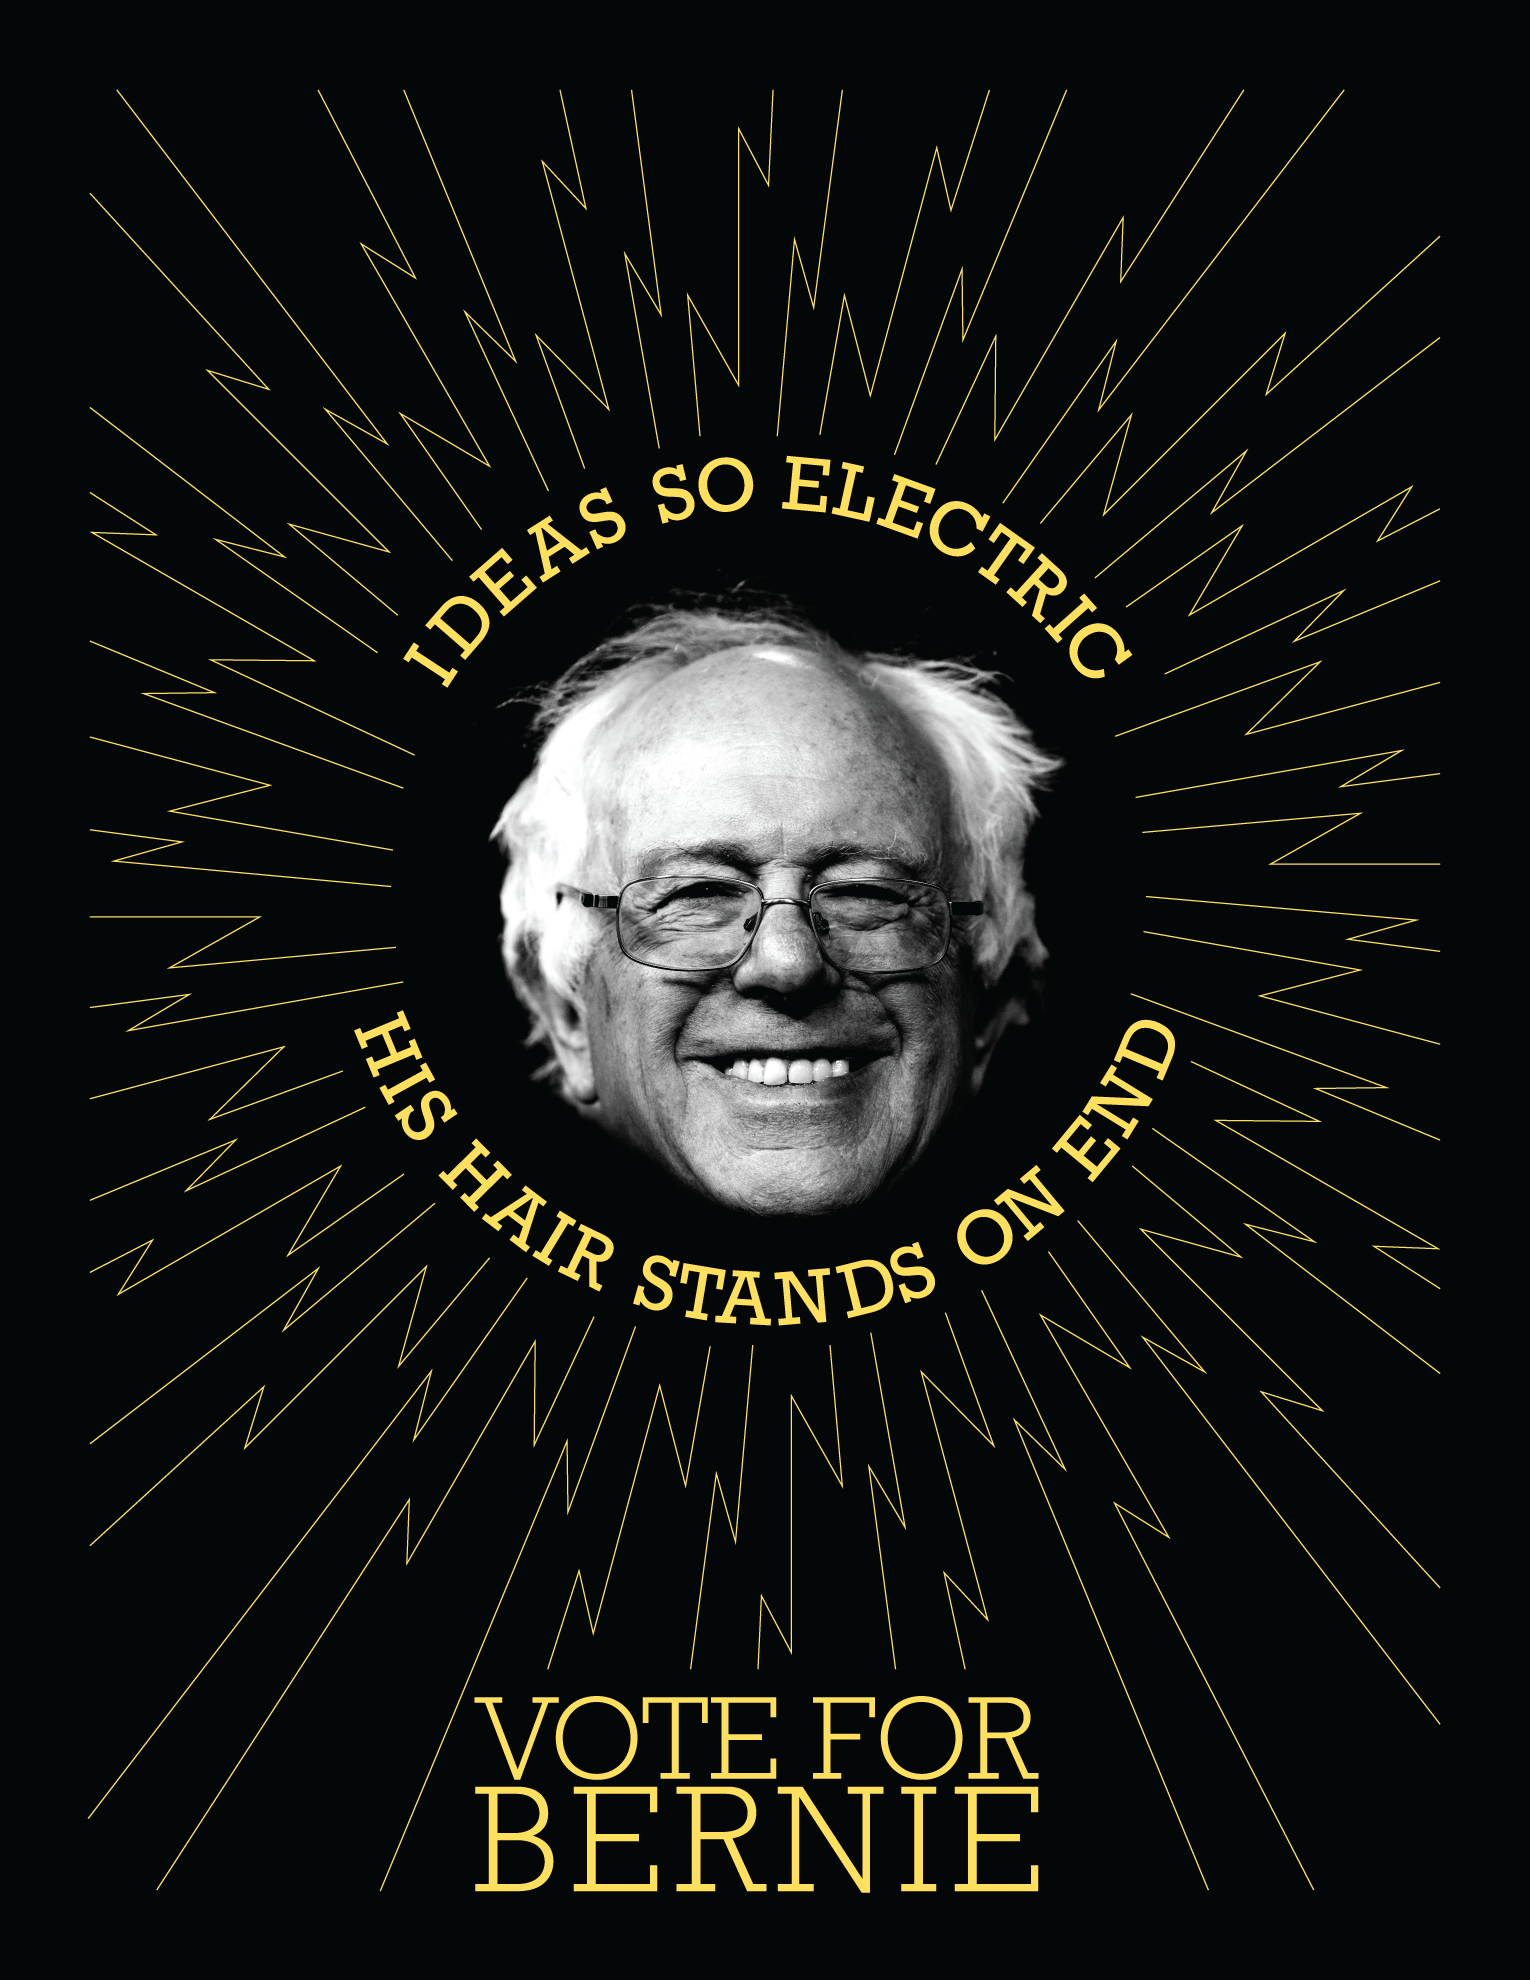 Sanders-electric-poster-04.png